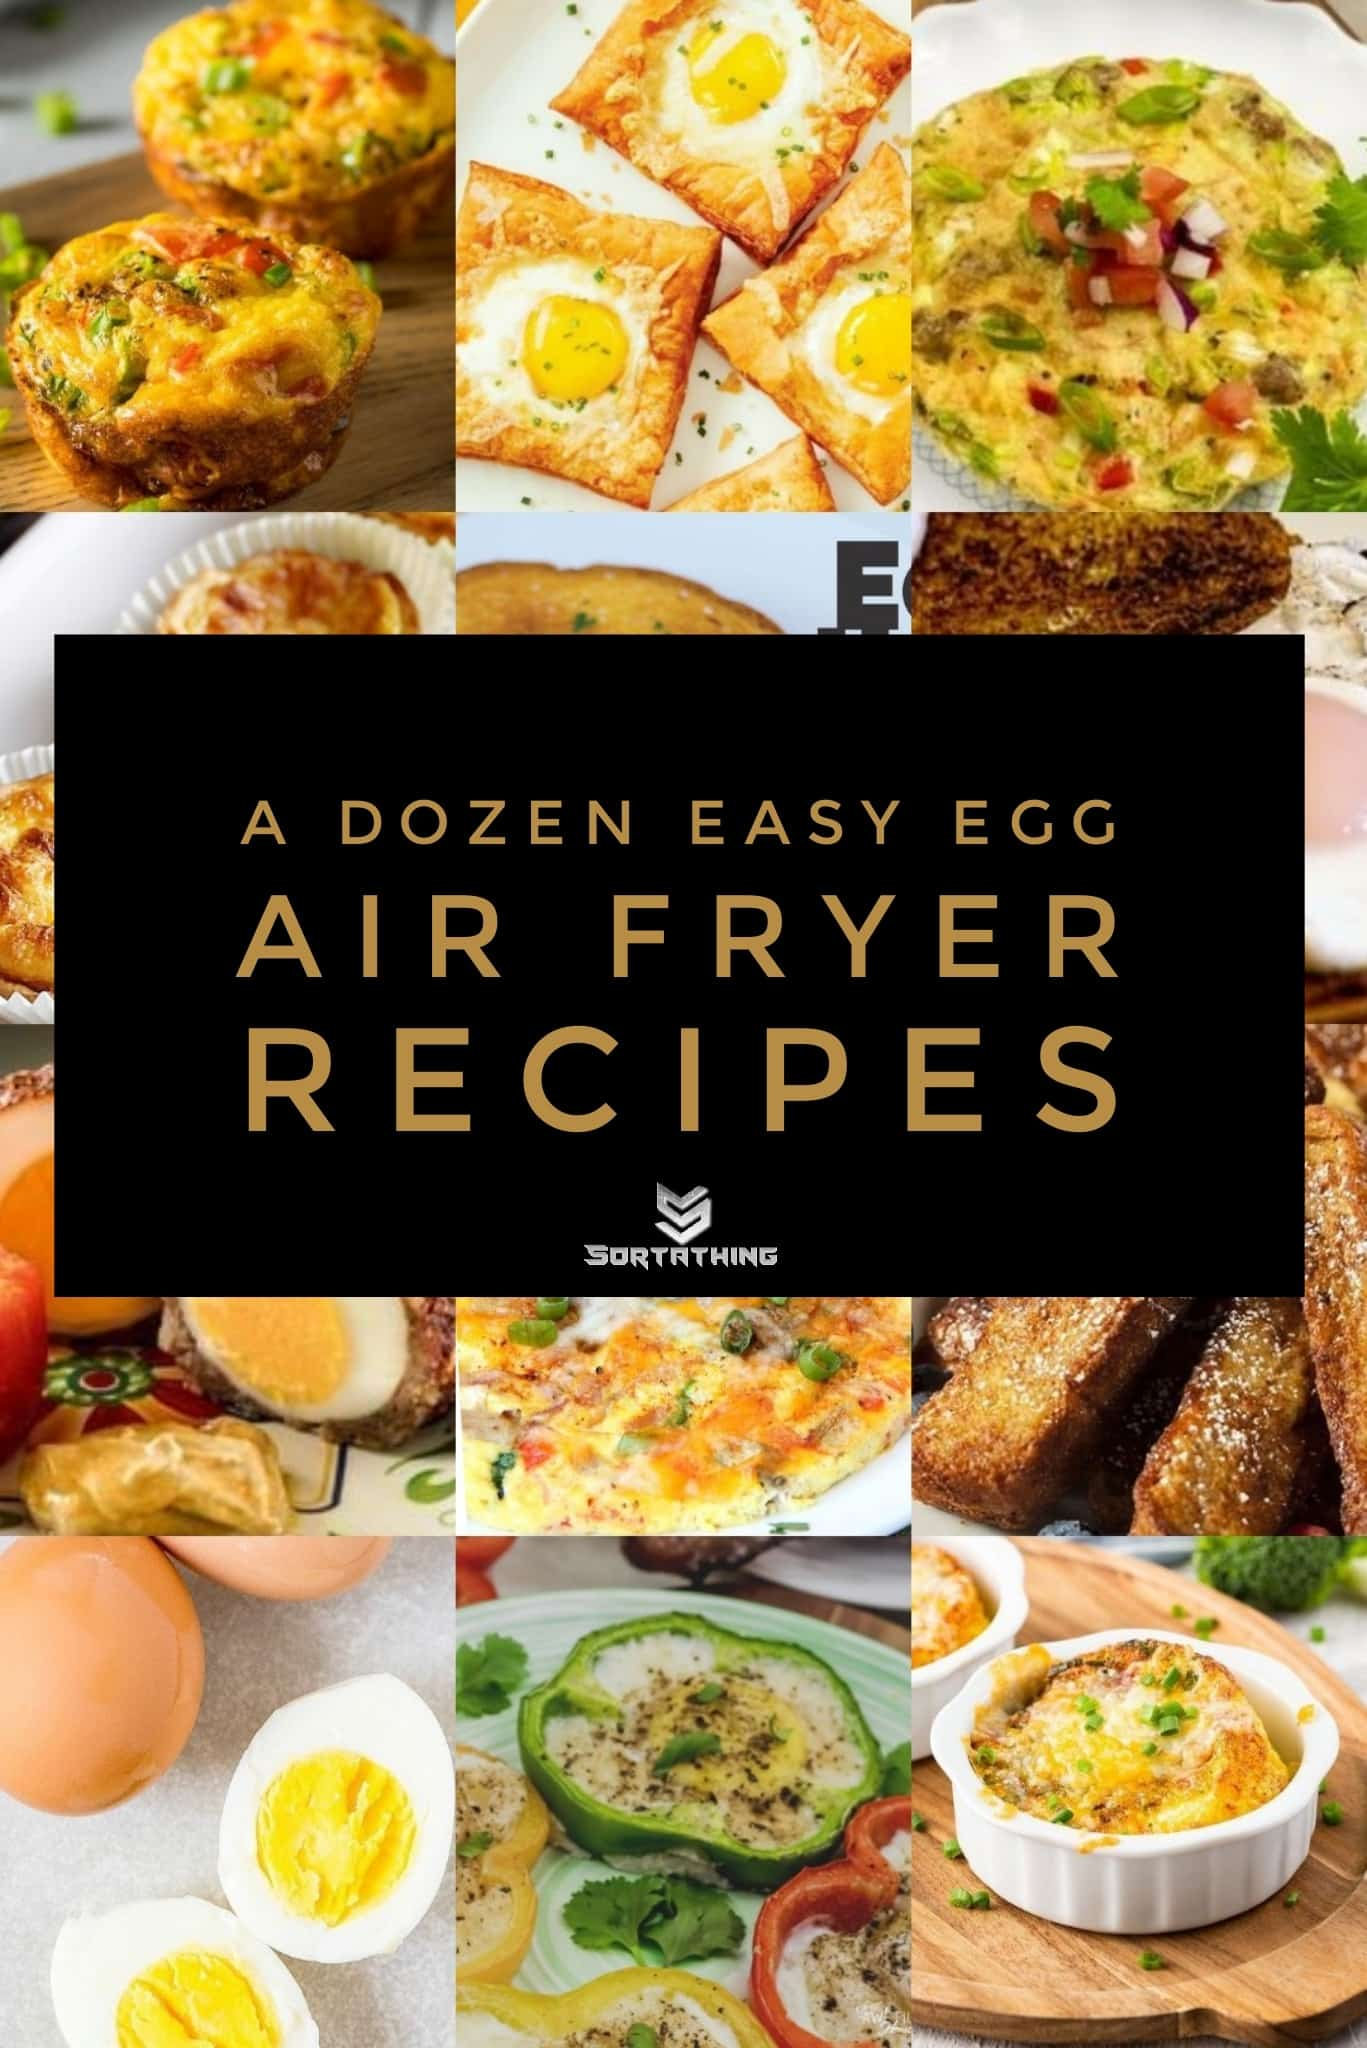 A Dozen Easy Egg Air Fryer Recipes